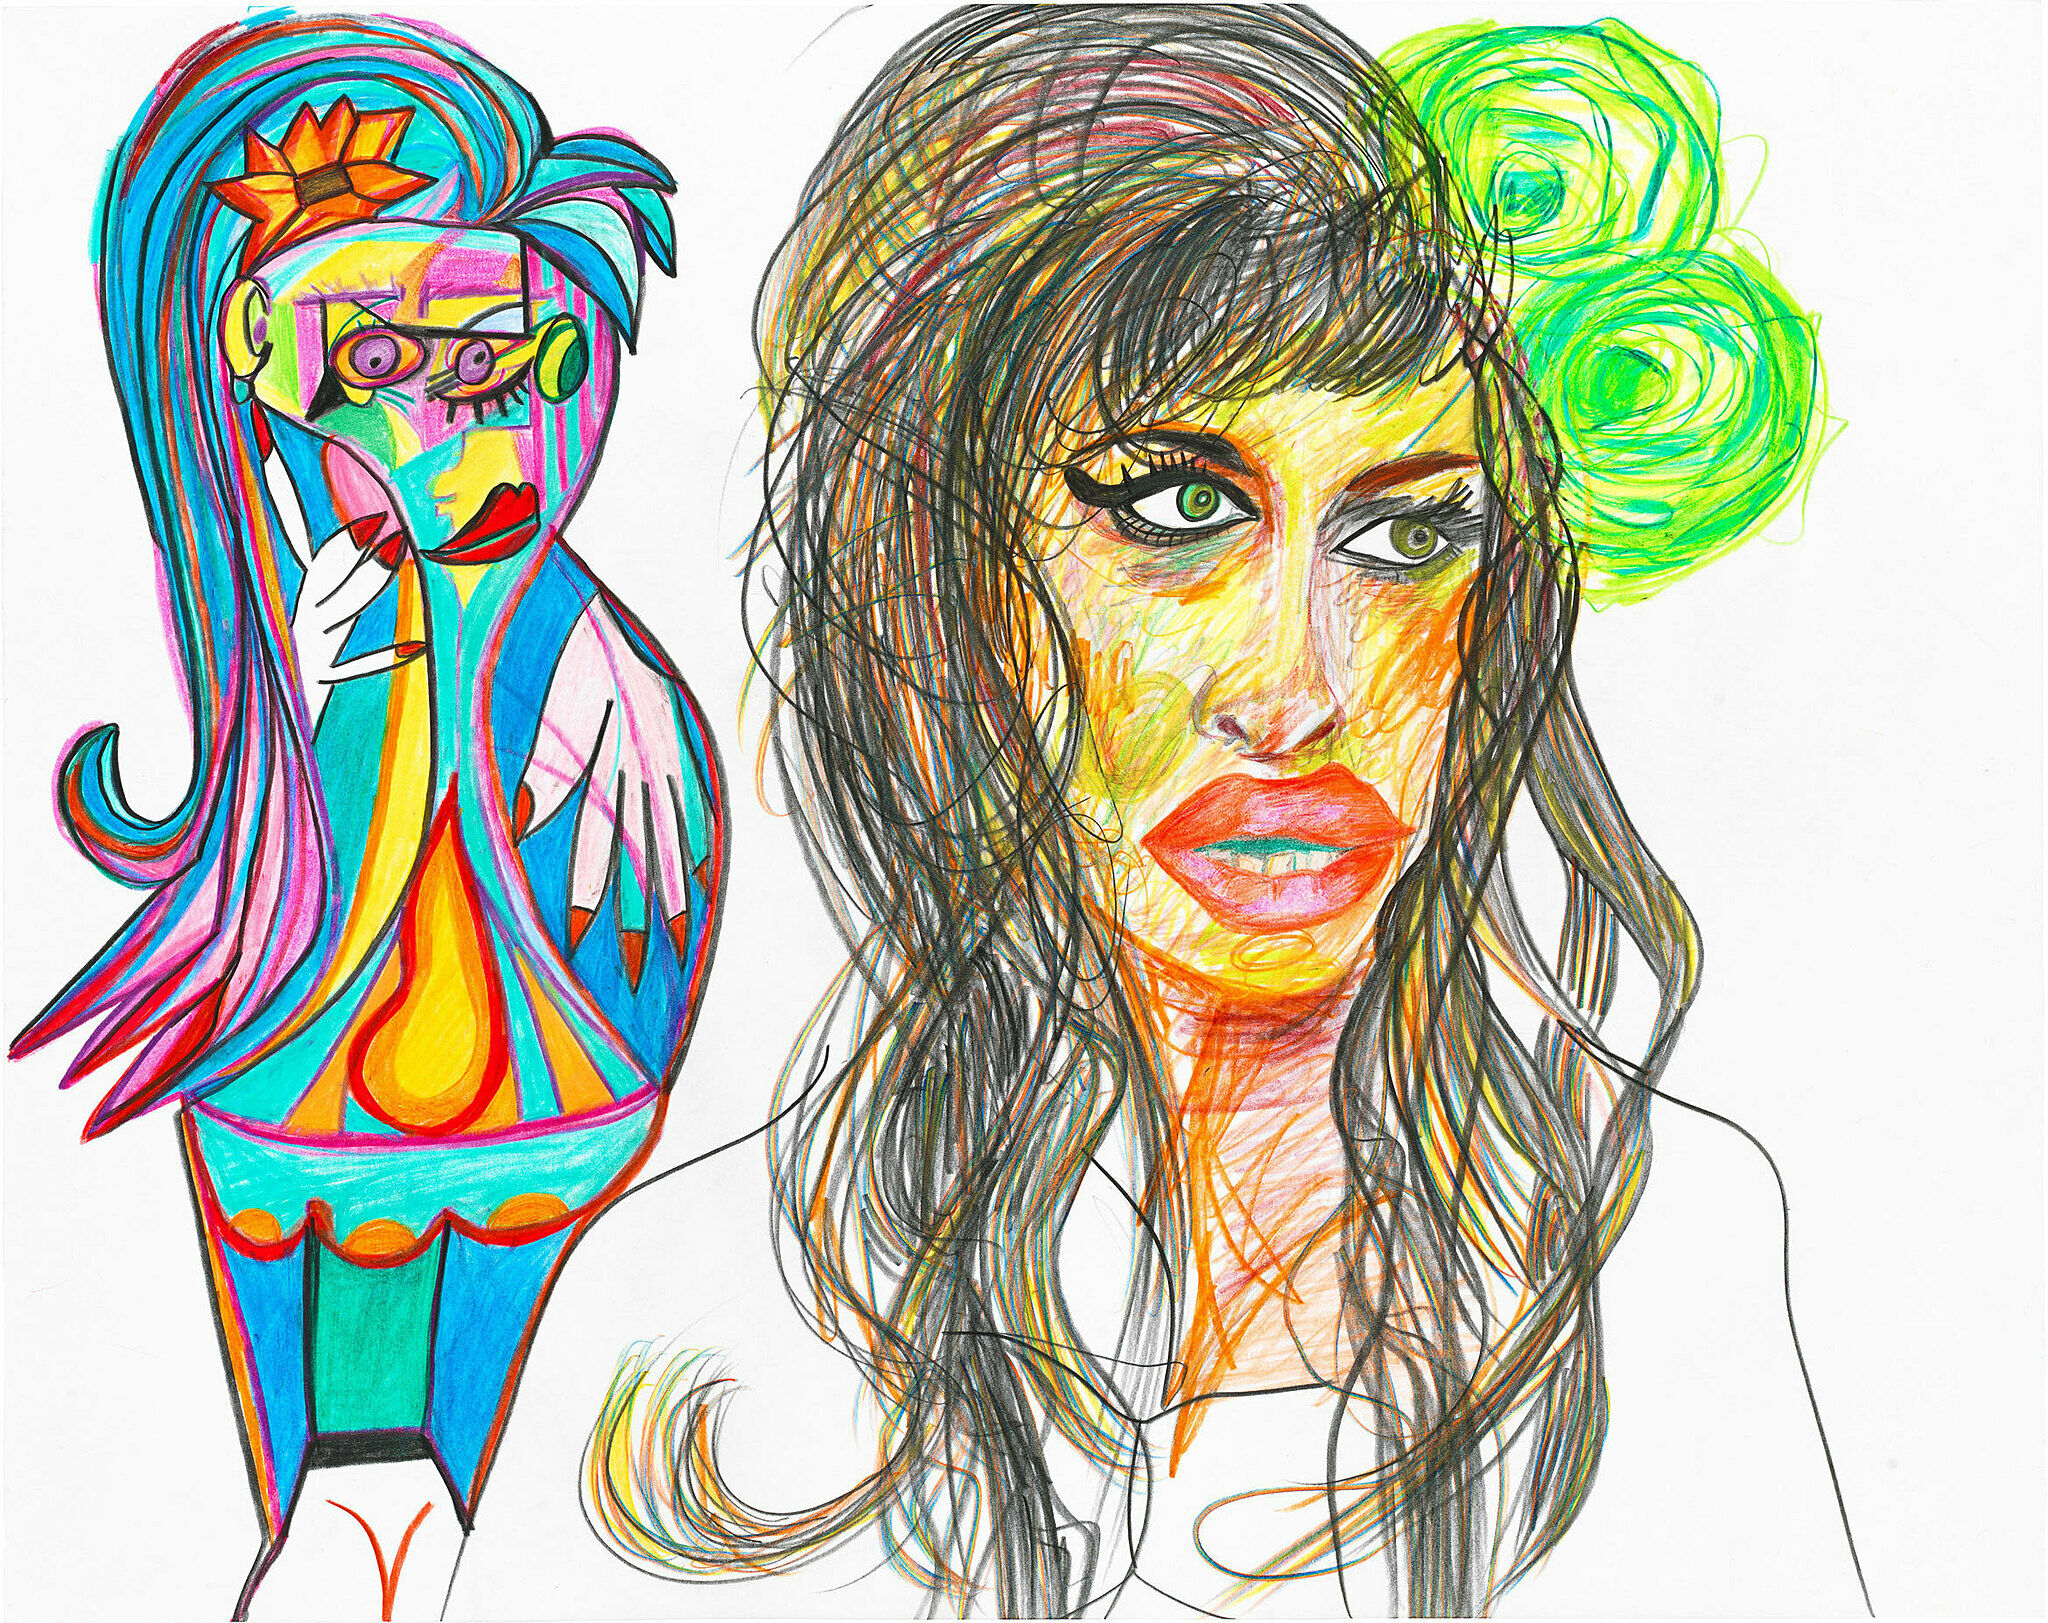 A drawing by Rachel Harrison. An abstract portrait of the late musician Amy Winehouse